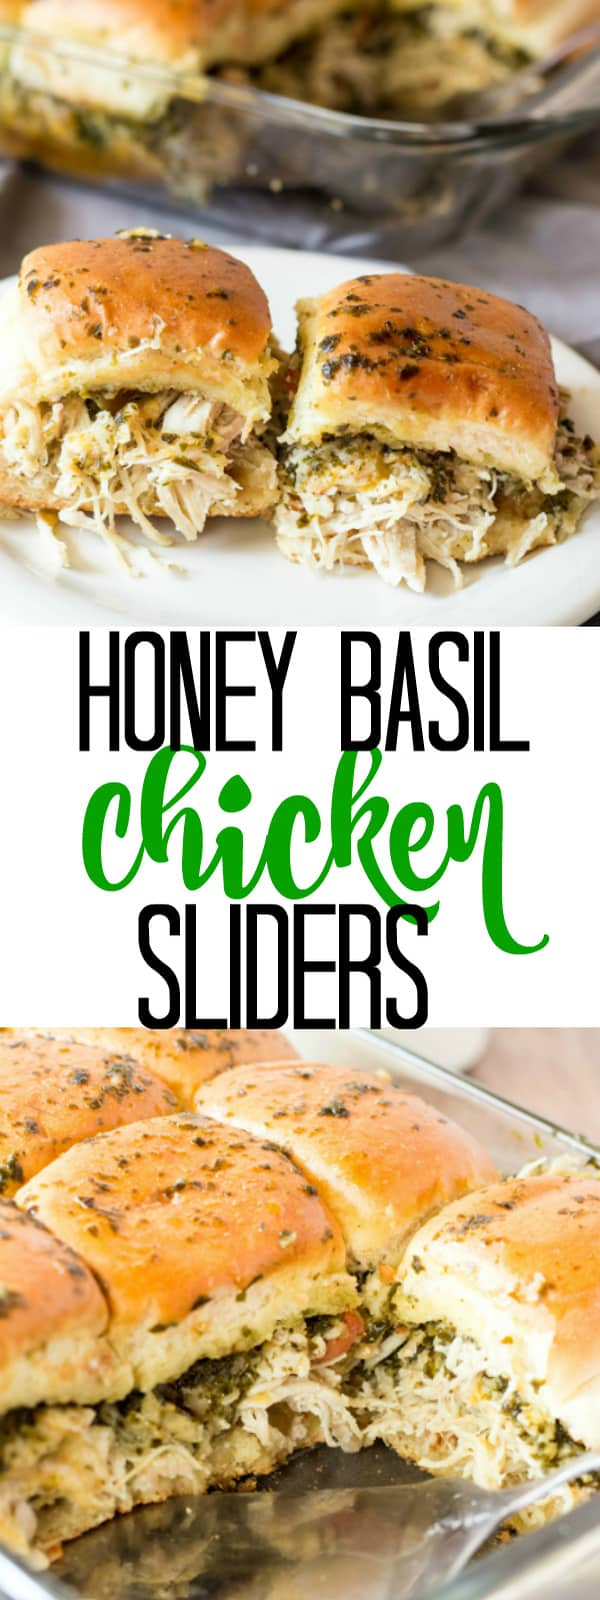 Honey Basil Chicken Sliders collage with words in middle